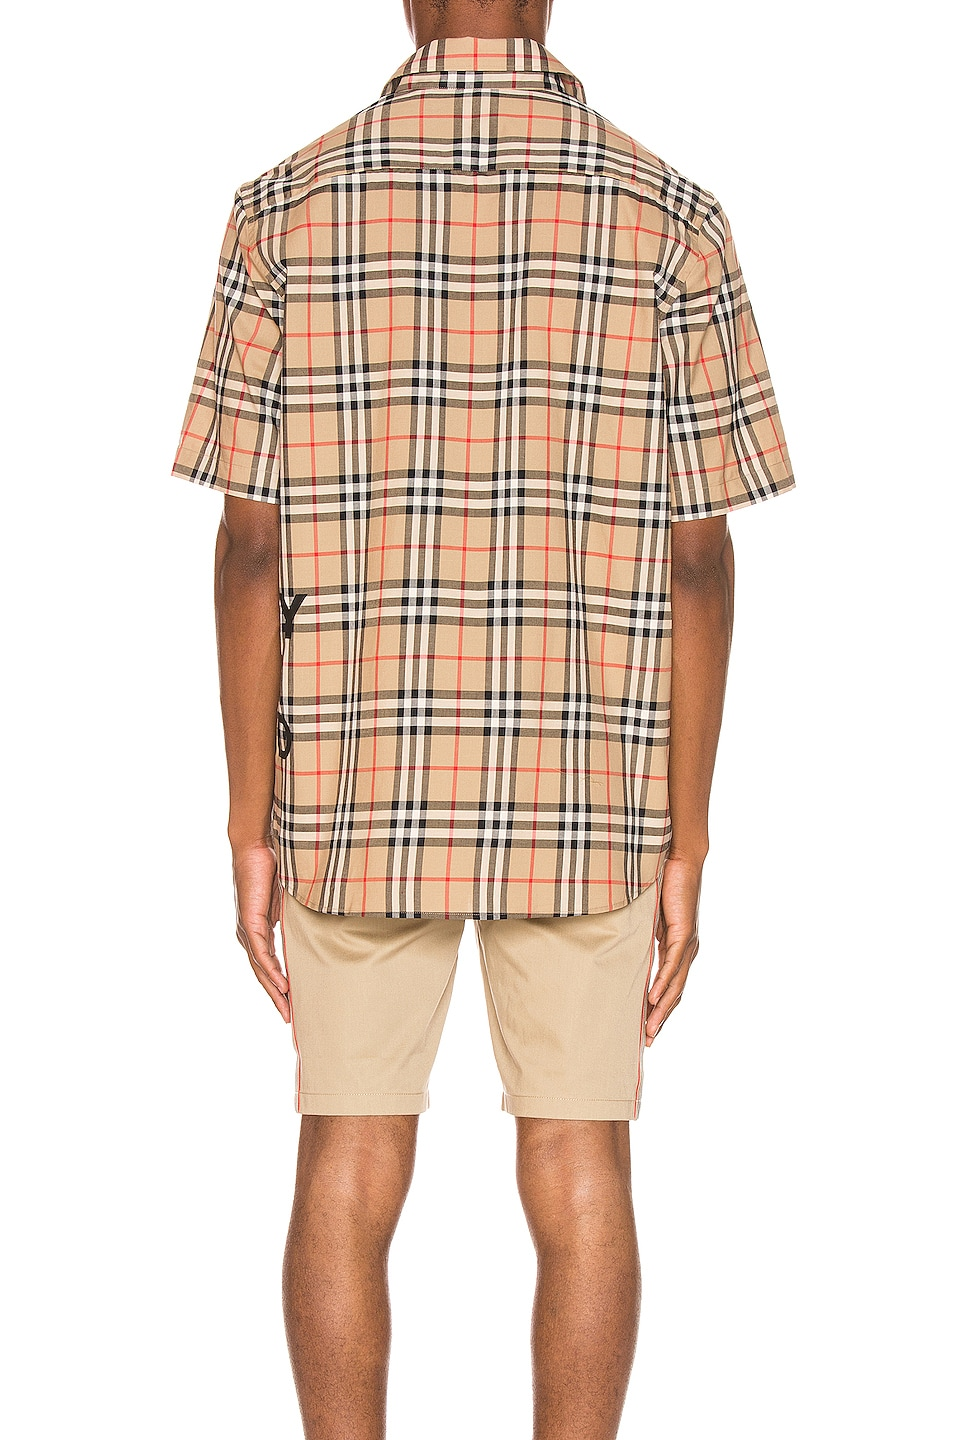 Image 4 of Burberry Sandor Printed Vintage Check Shirt in Archive Beige